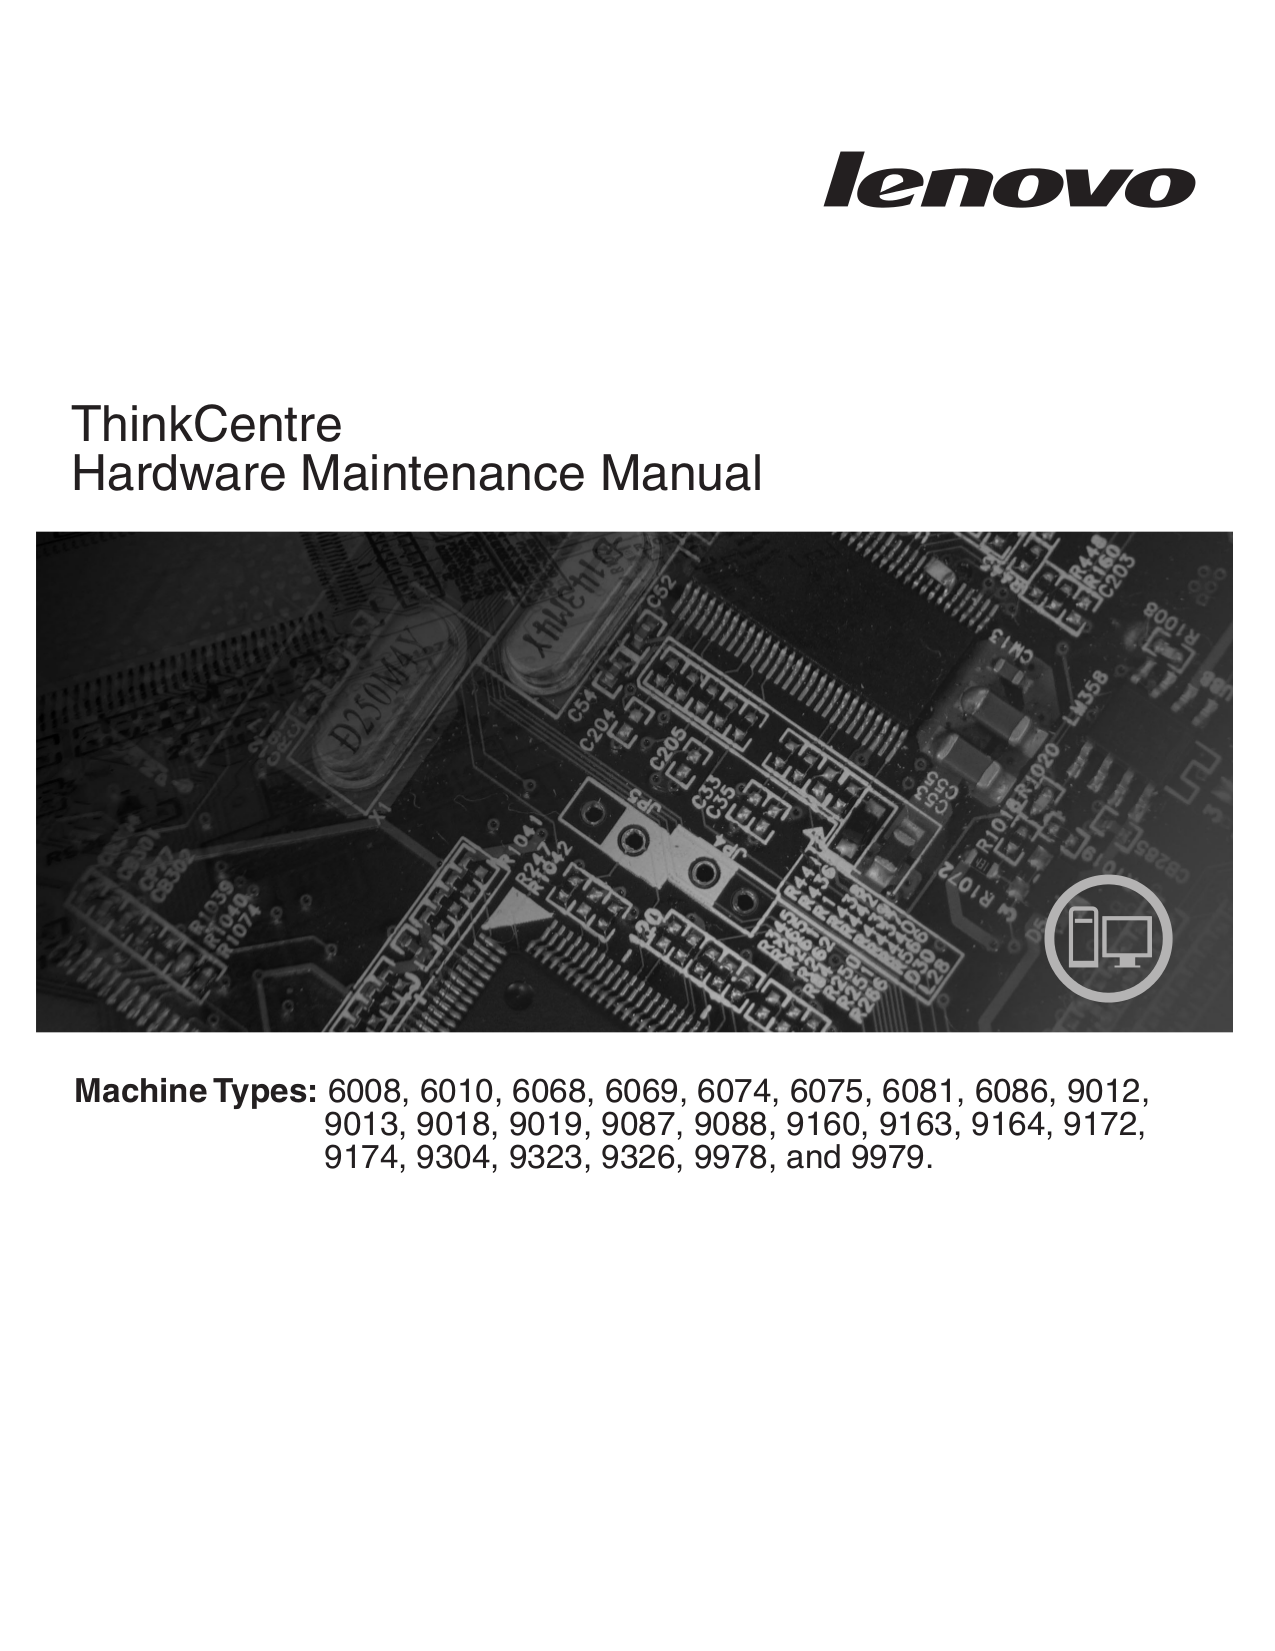 pdf for Lenovo Desktop ThinkCentre M57p 9194 manual